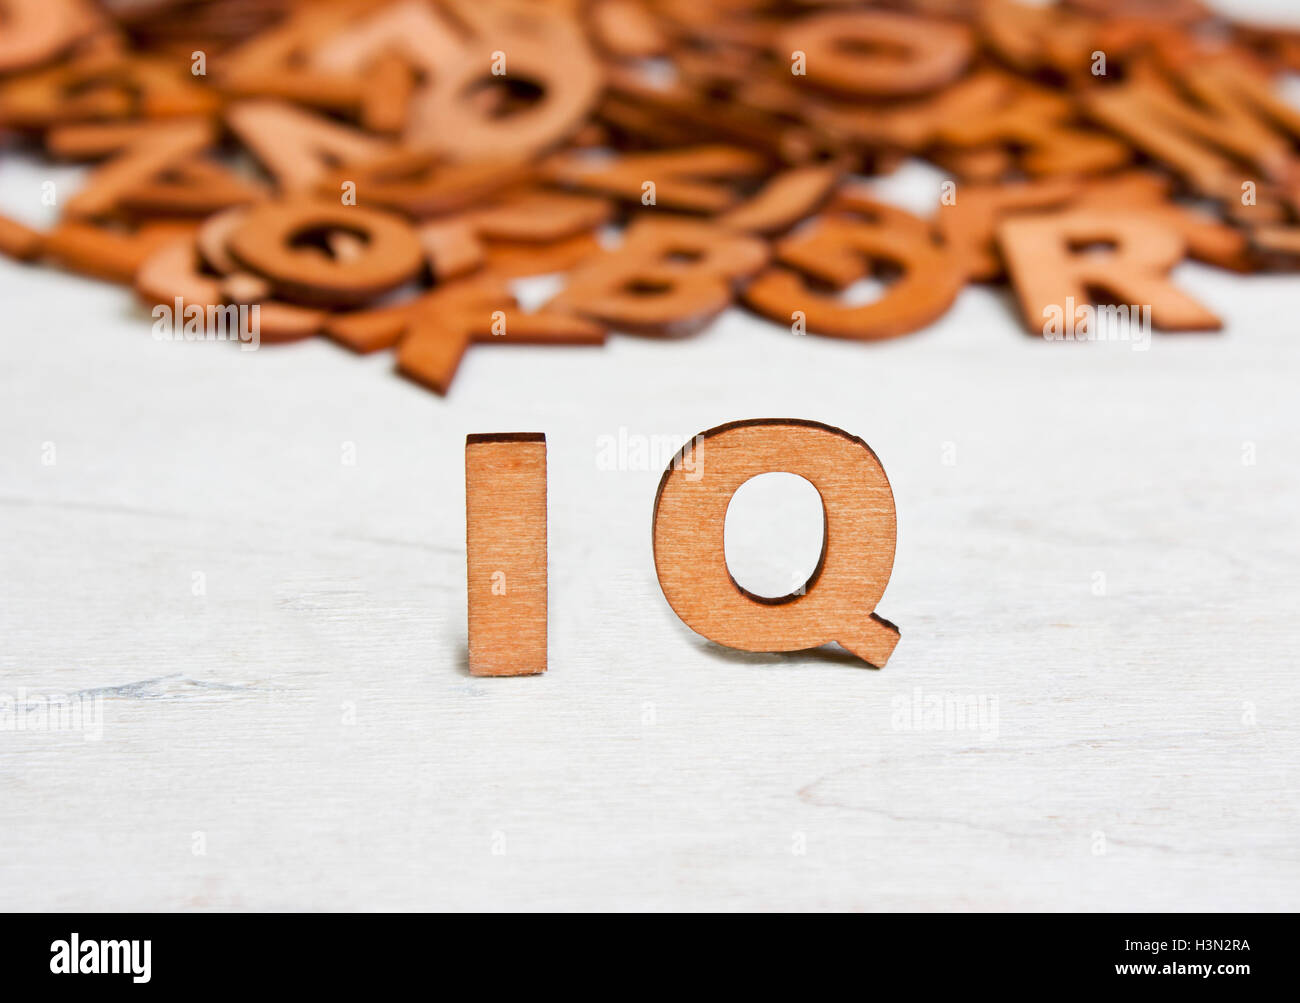 Word  IQ (Intelligence quotient ) made with wooden letters on a background of other blurred letters - Stock Image